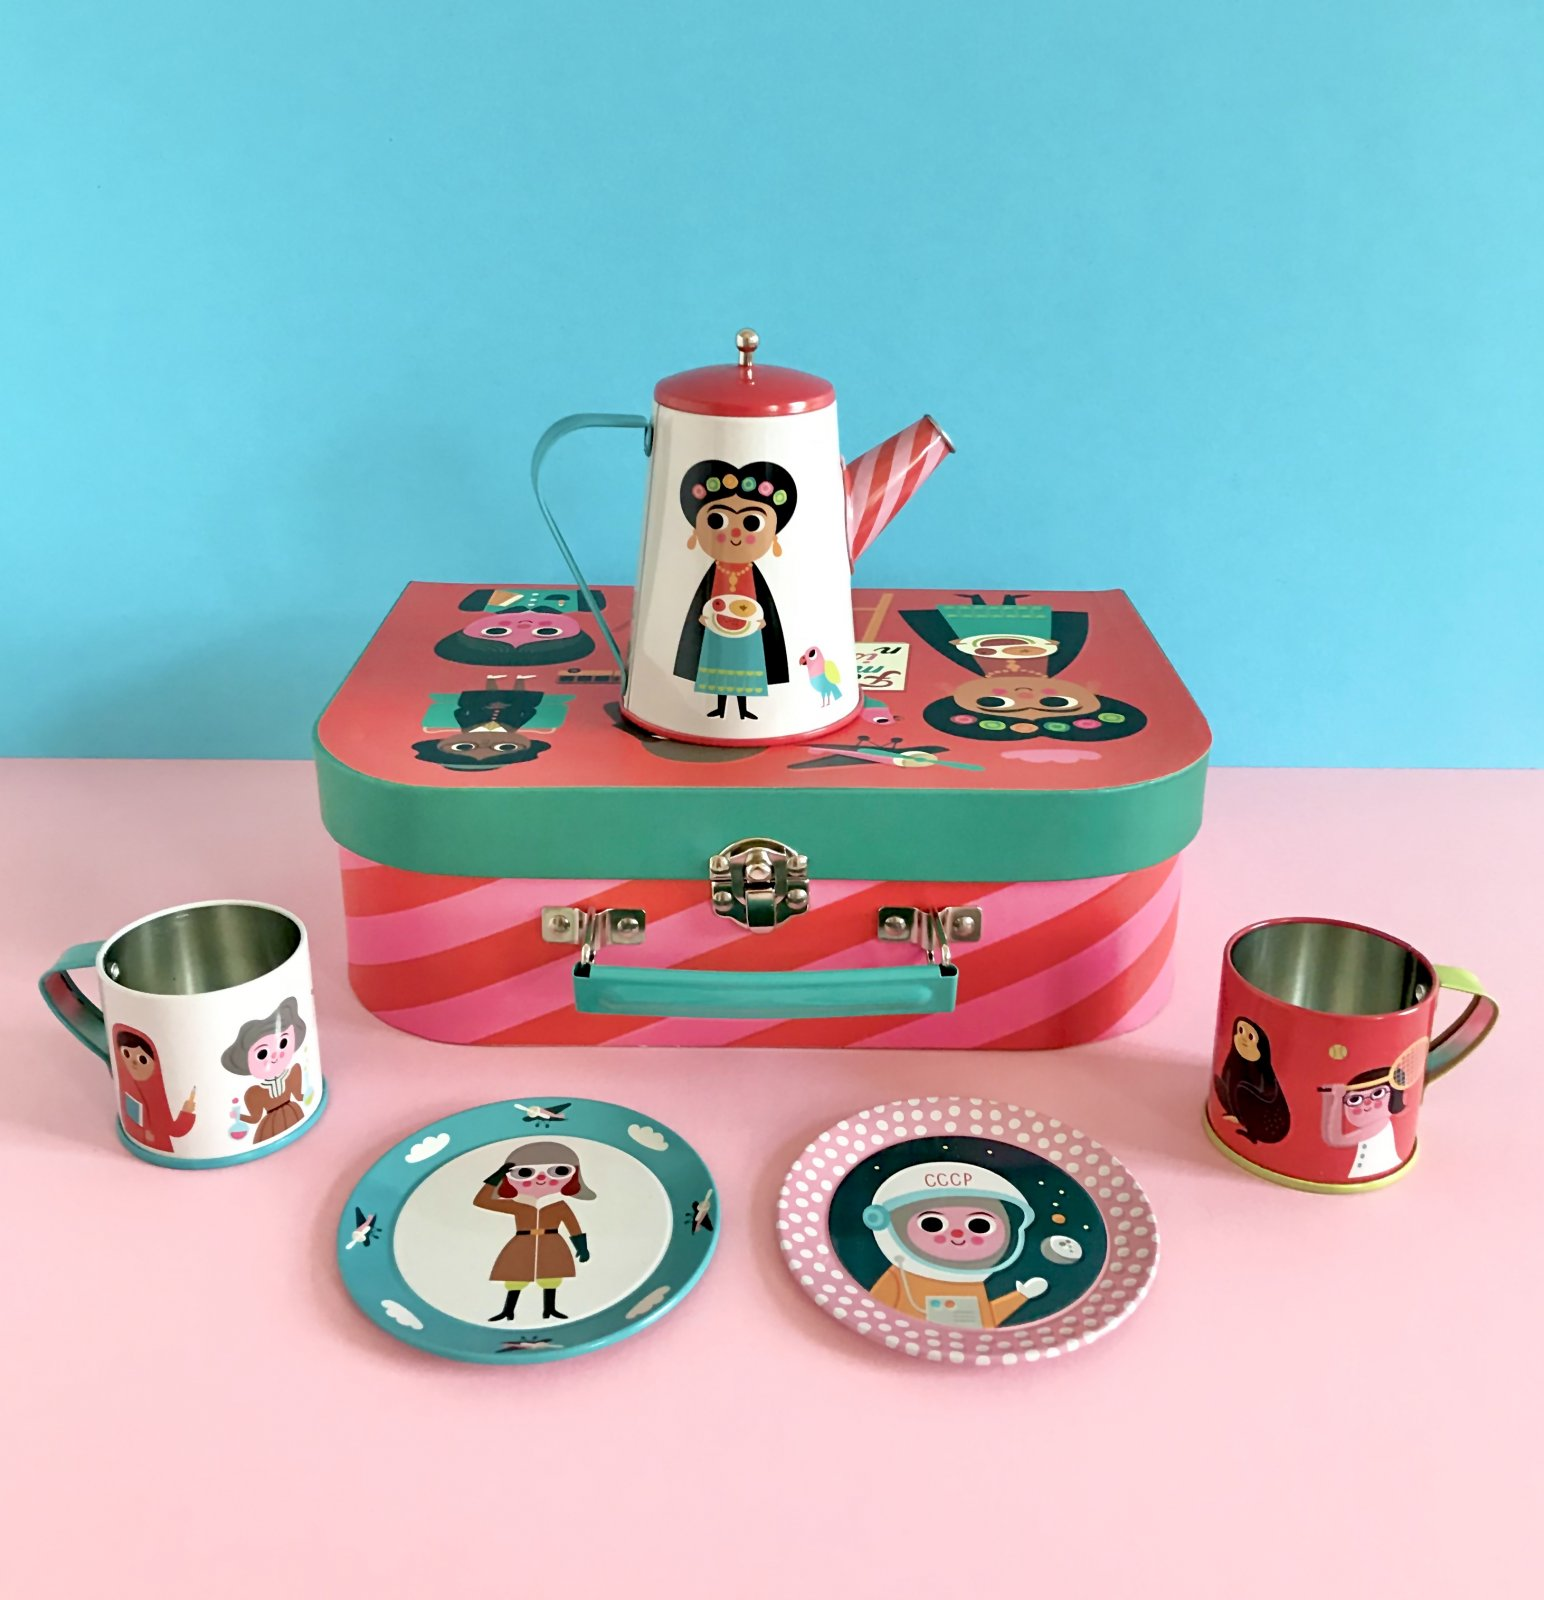 Feminist Tin Tea Set by OMM design